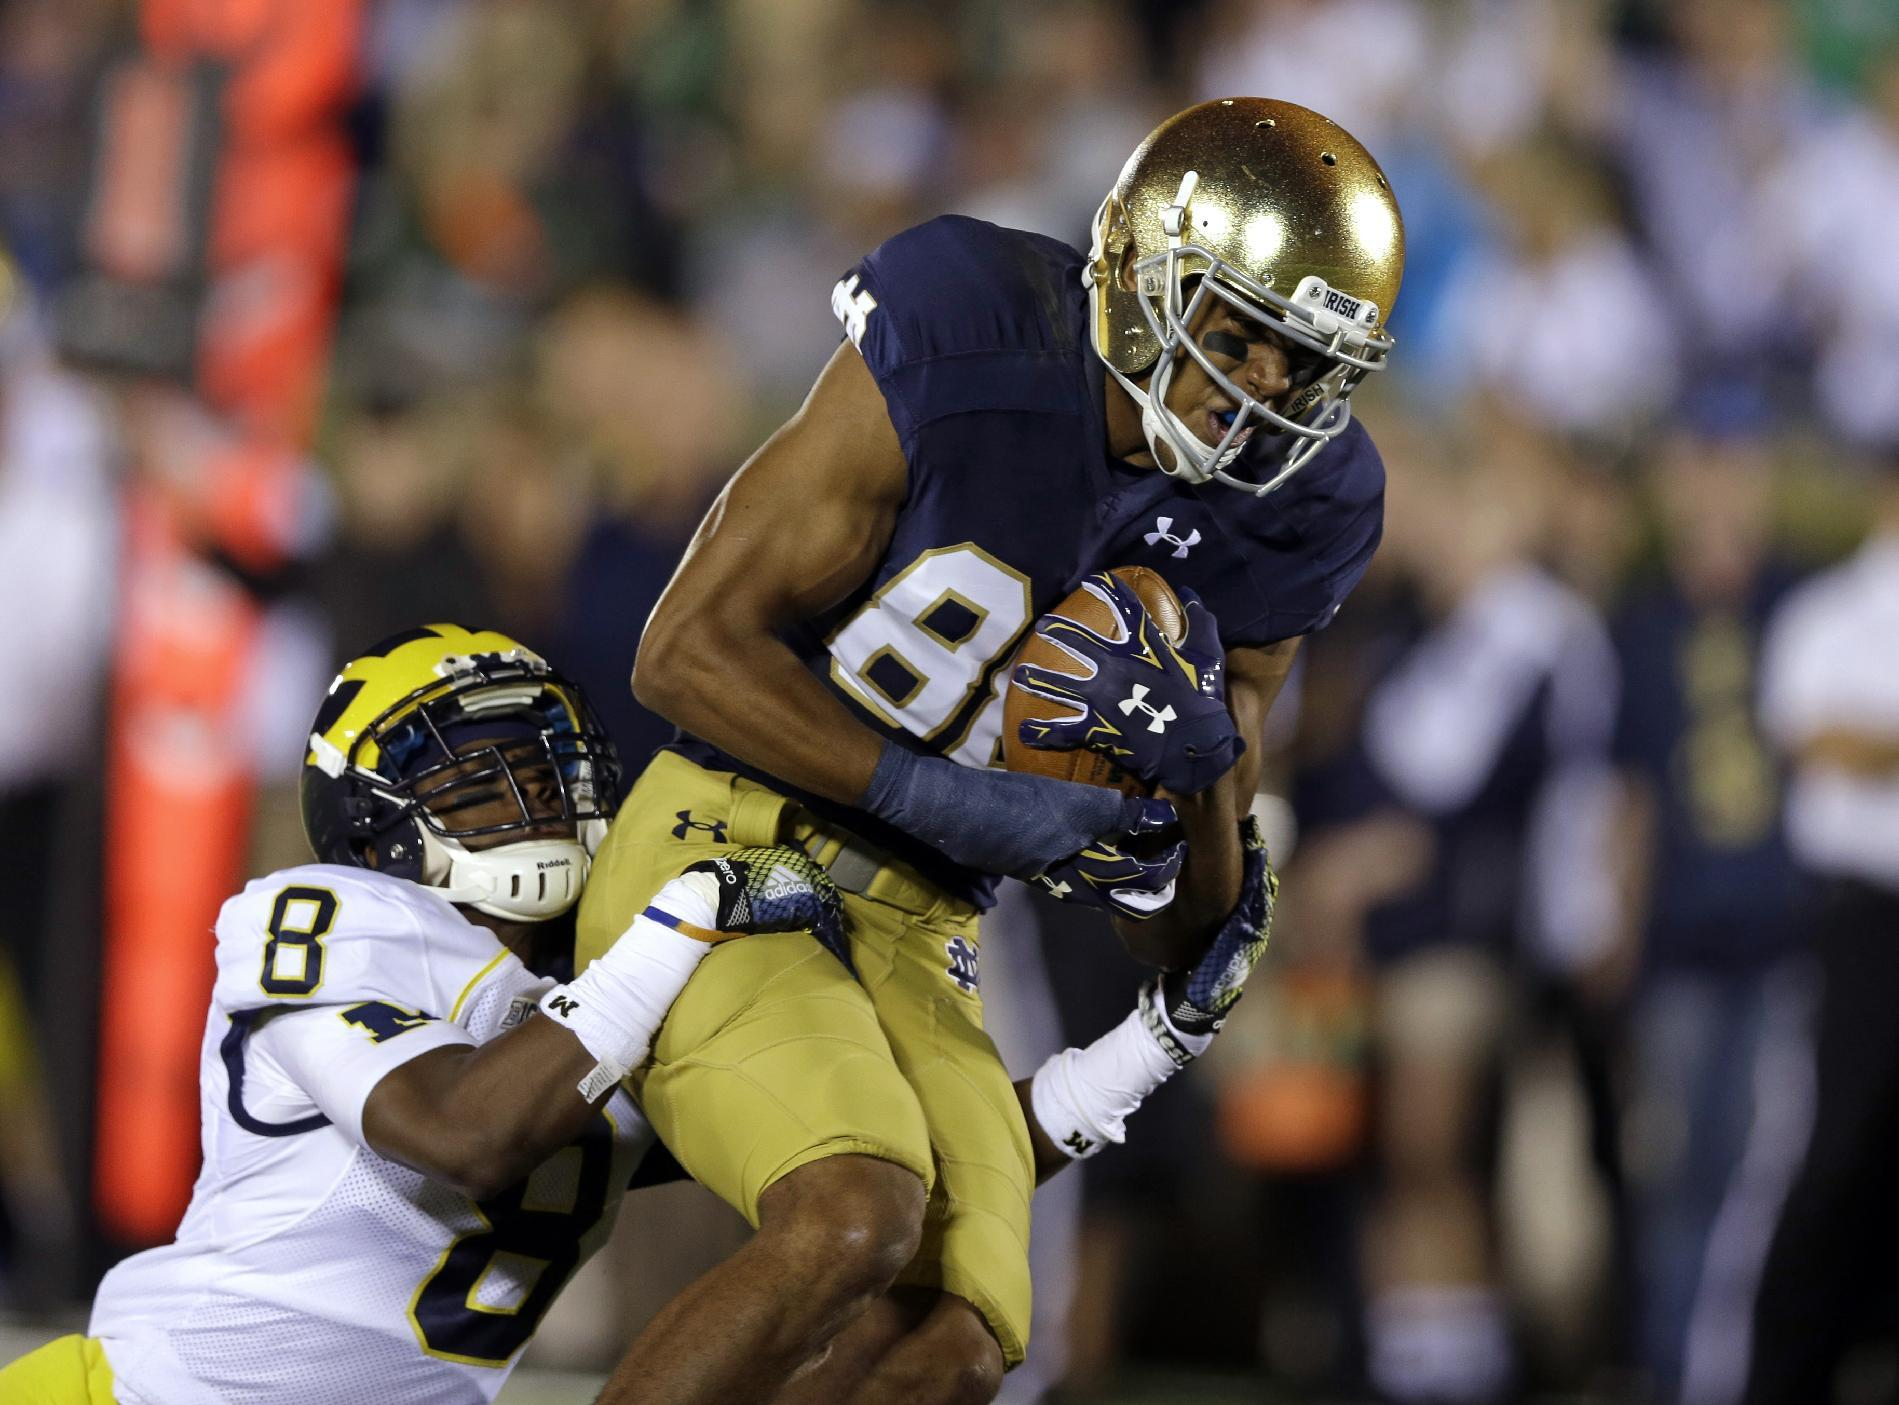 Notre Dame WR Corey Robinson wins student body president election